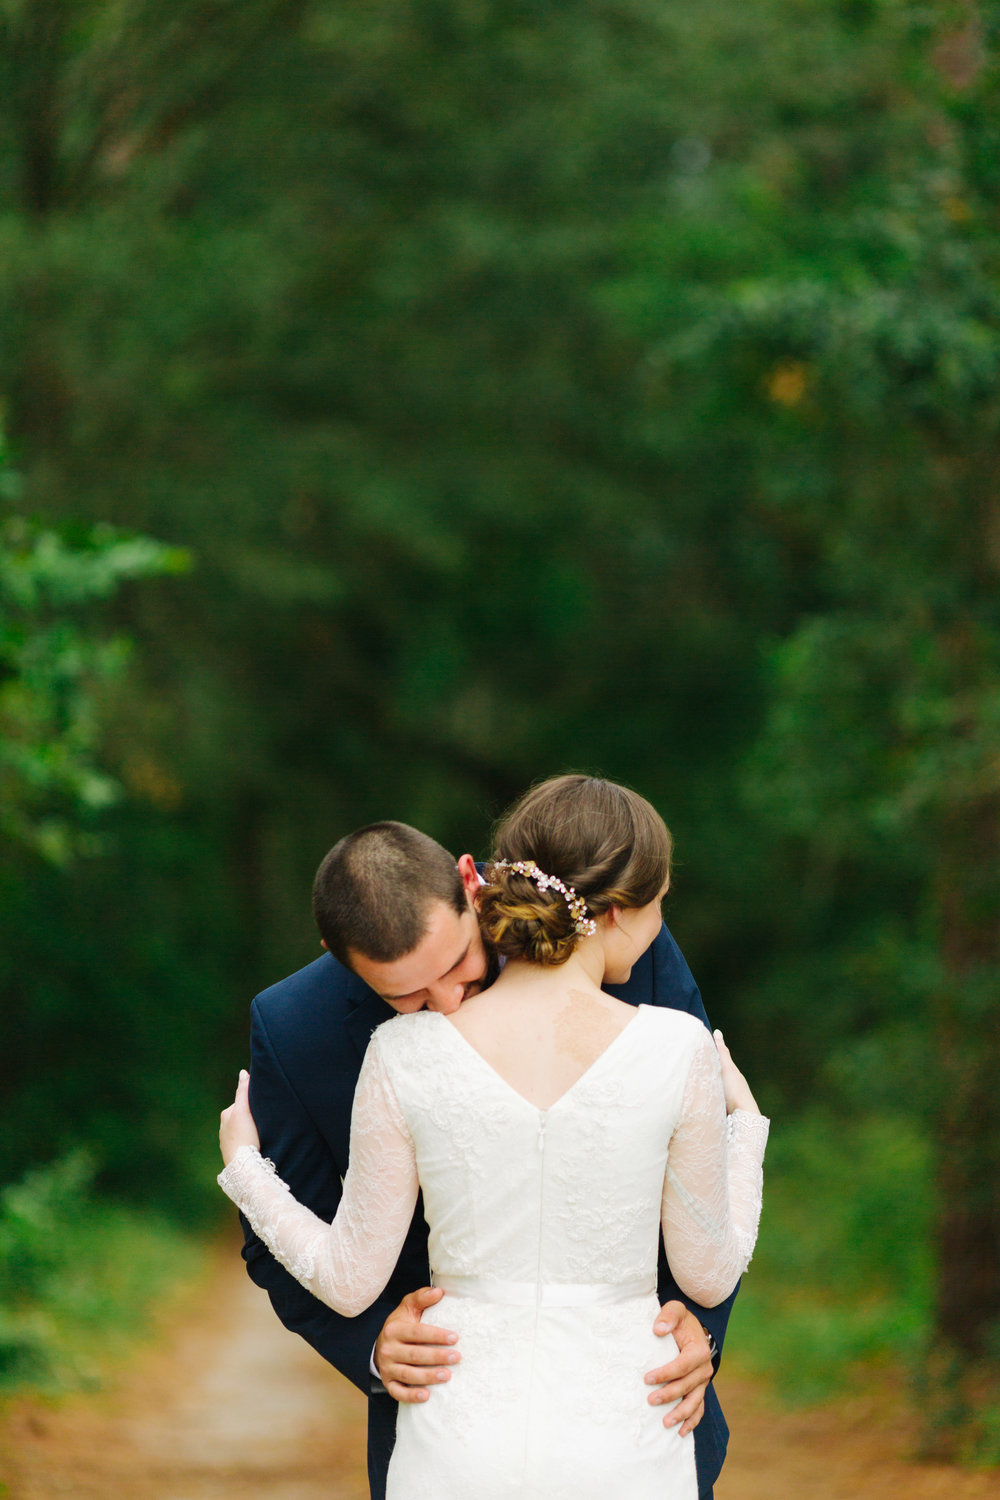 Caleb & Arielle's Wedding - Portraits - Jake & Katie Photography_033.jpg